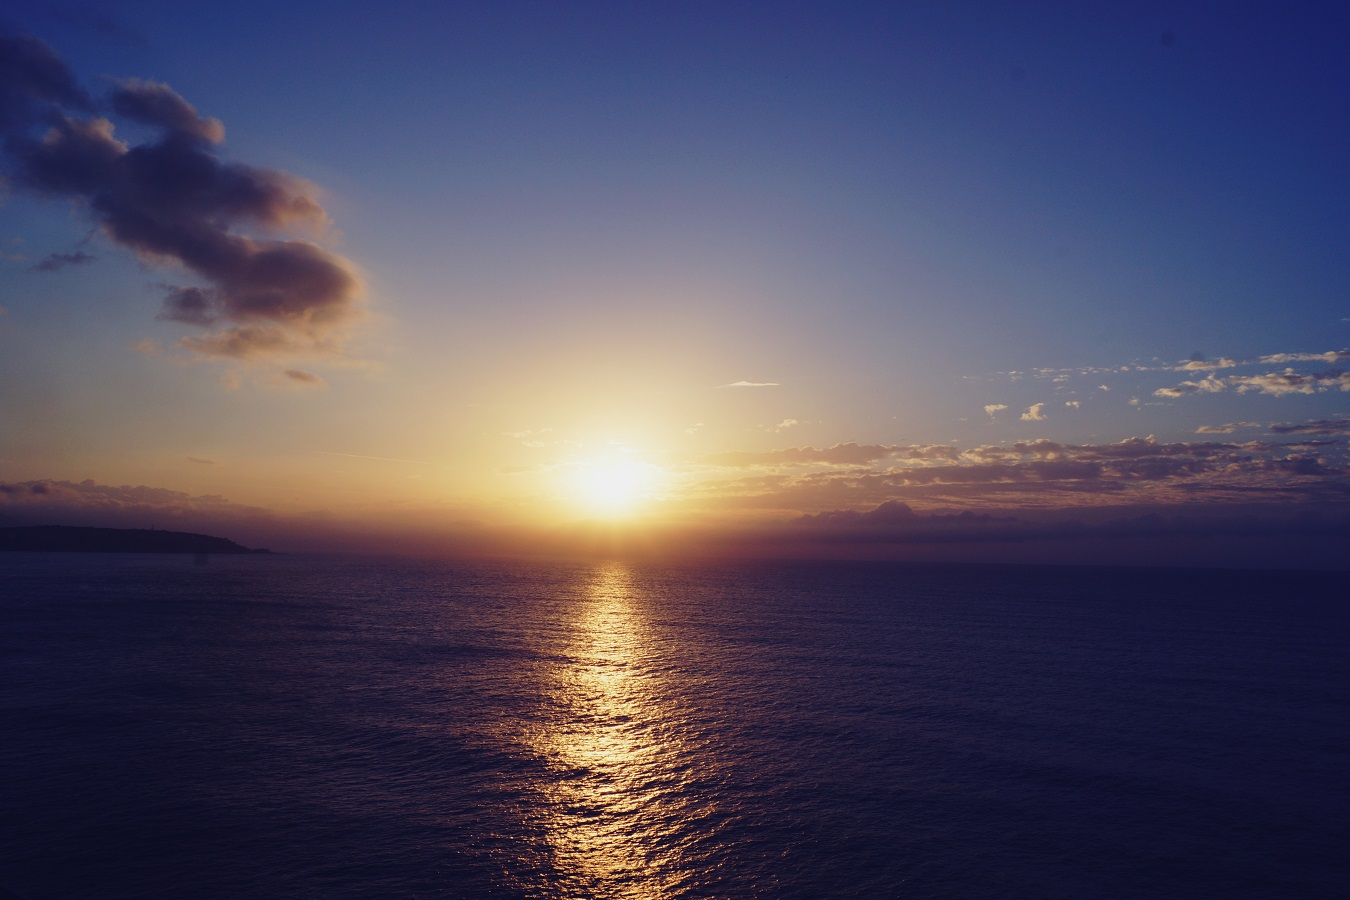 Queen Victoria Cunard sunset on the sea